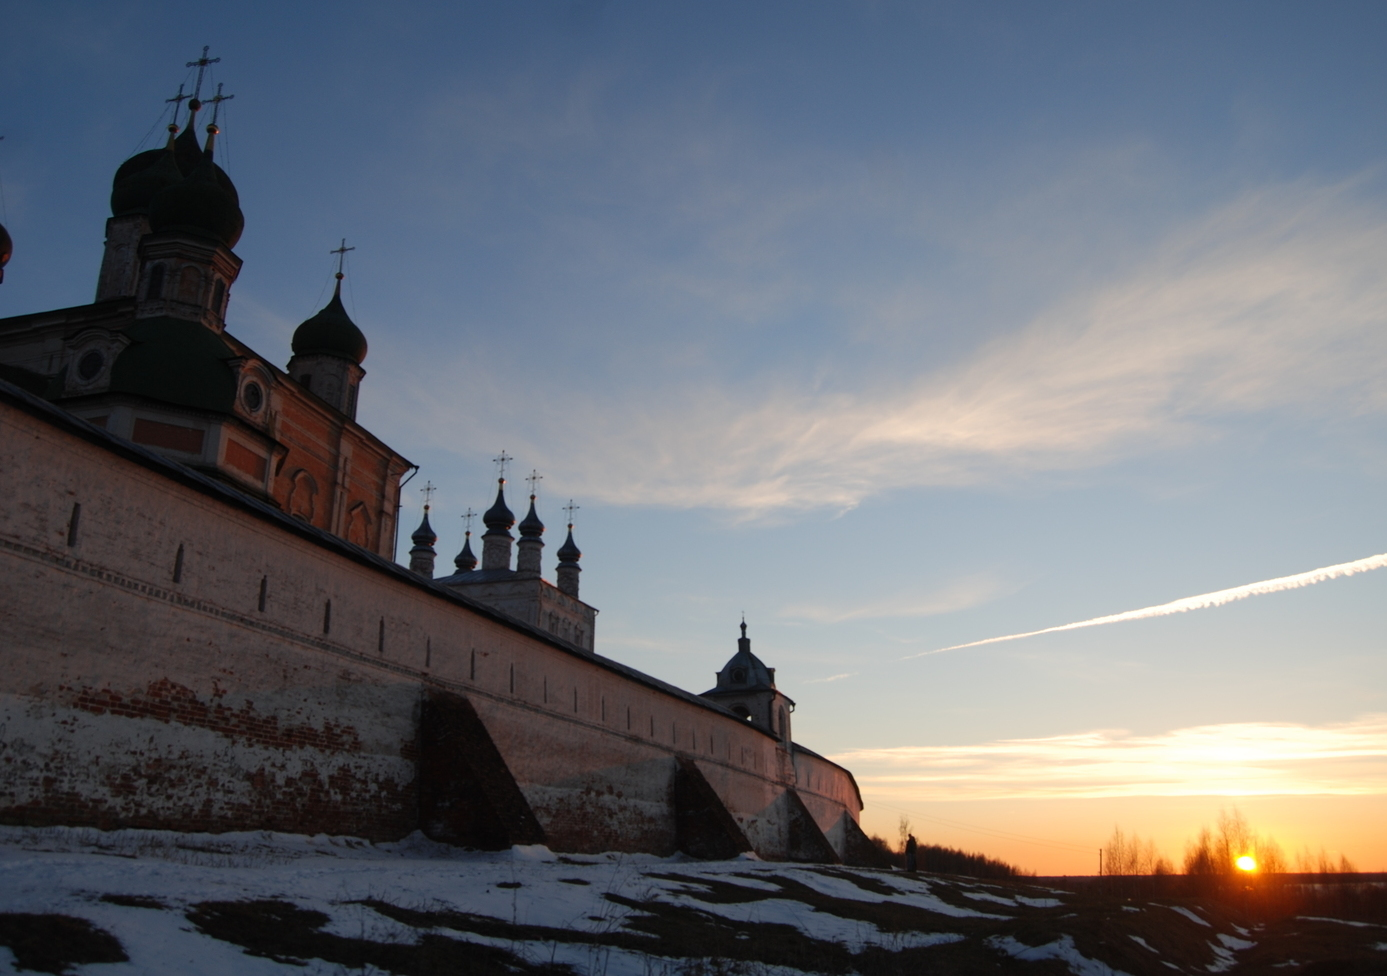 ne of the most ancient monasteries of Russia - Goritsky Assumption